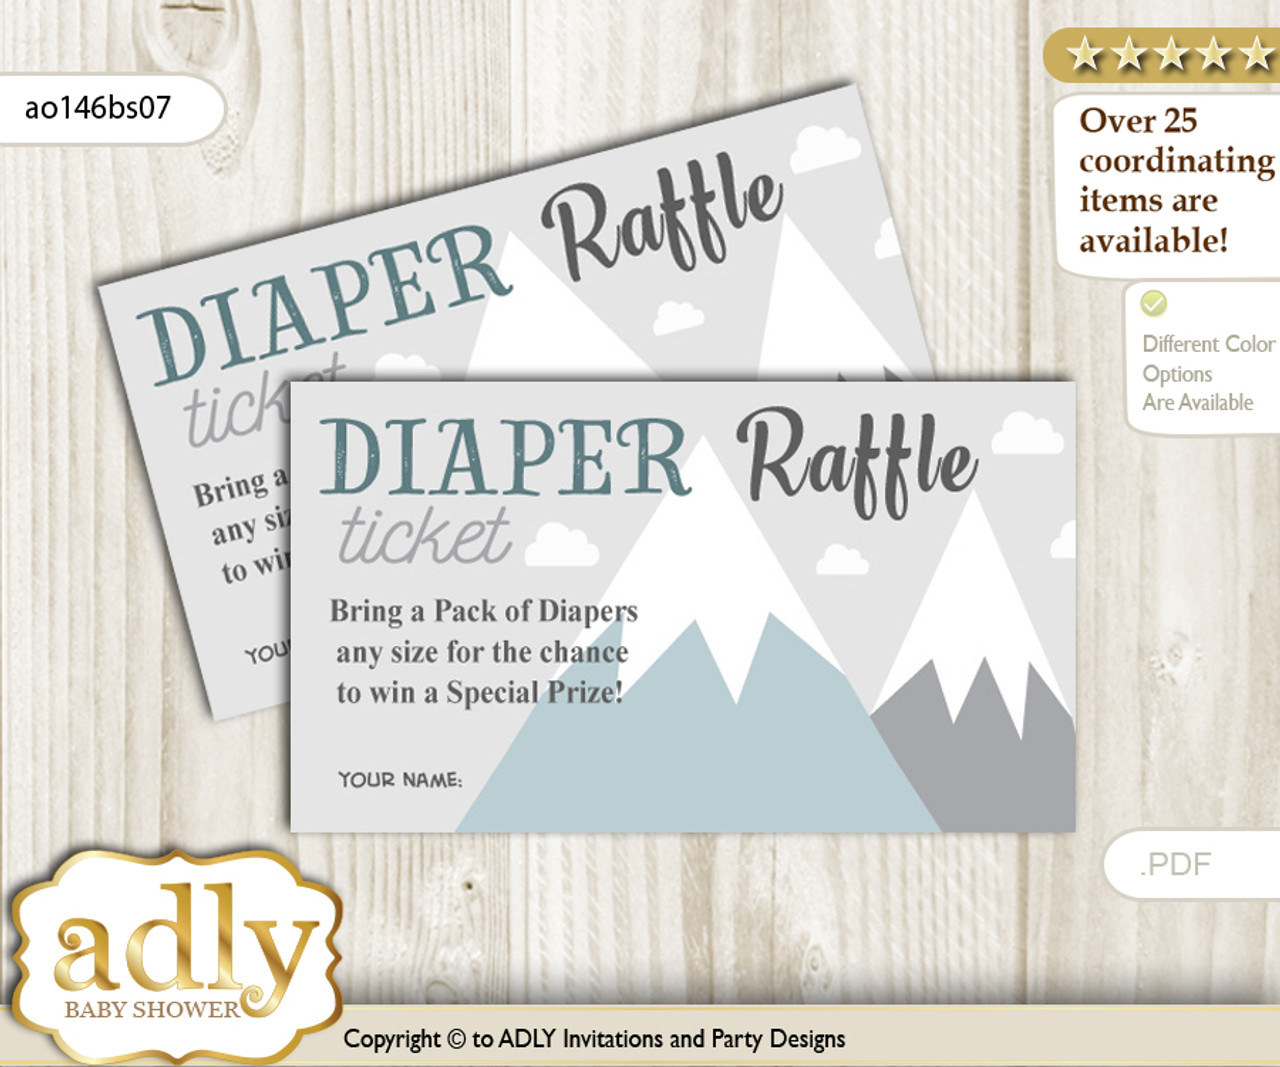 image about Diaper Raffle Printable titled Journey Mountain Diaper Raffle Printable Tickets for Child Shower, Grey White, Boy